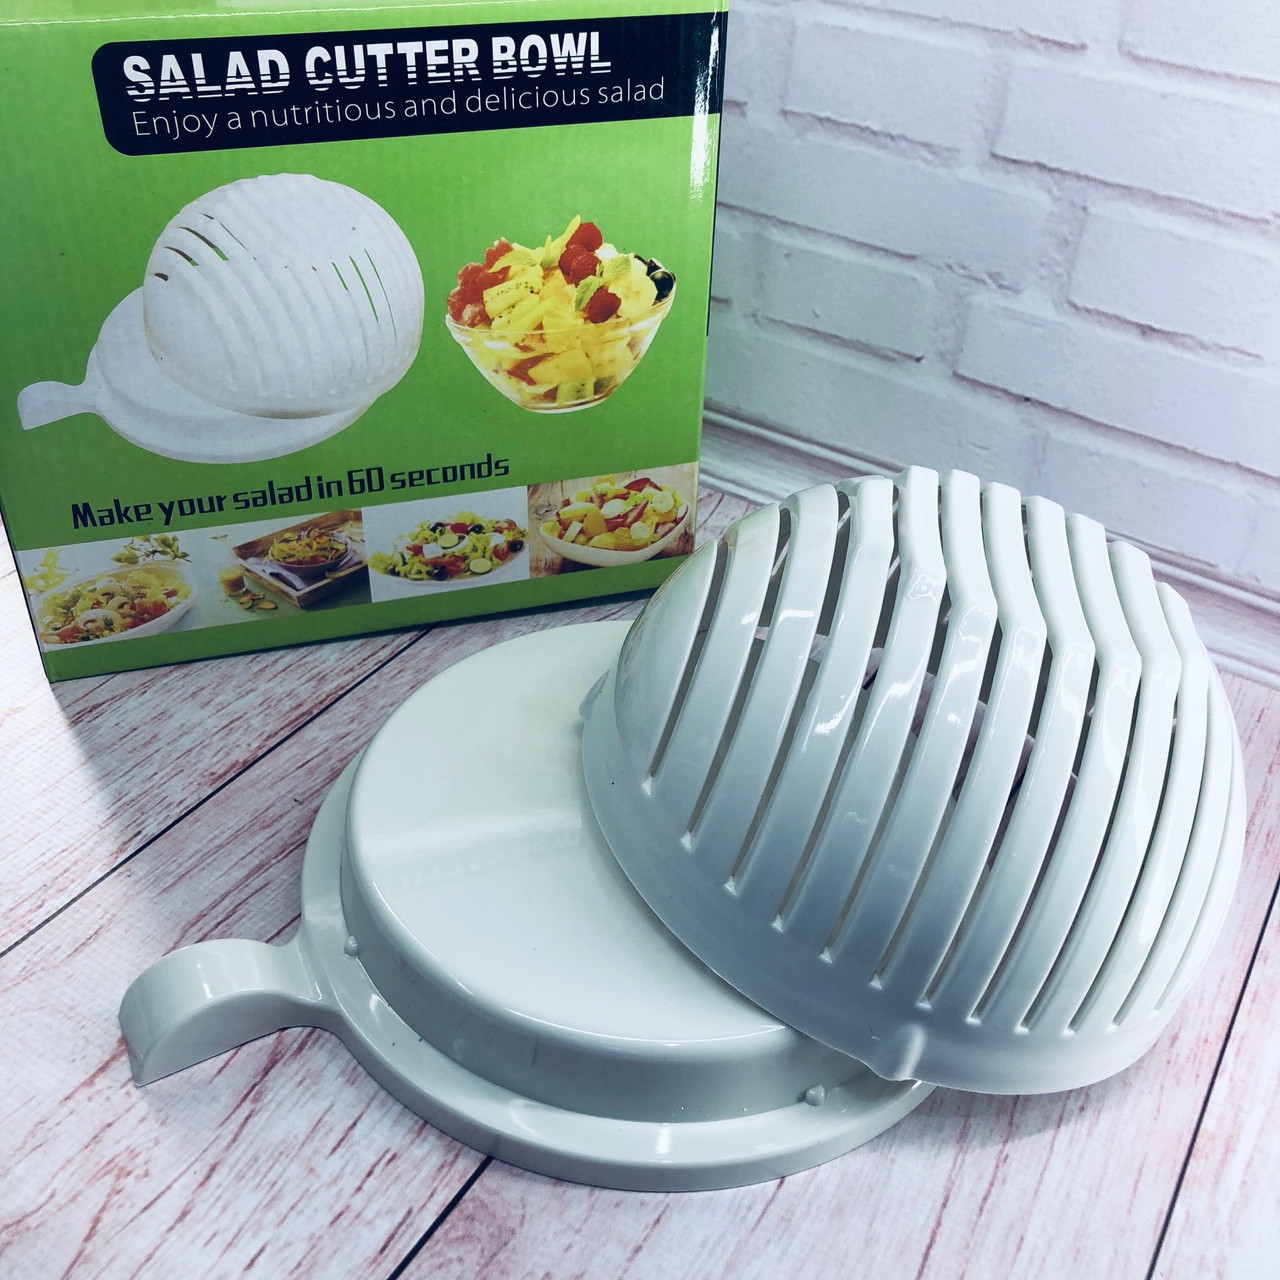 Салатница - овощерезка 2 в 1 Salad Cutter Bowl чаша для нарезки овощей и салатов миска